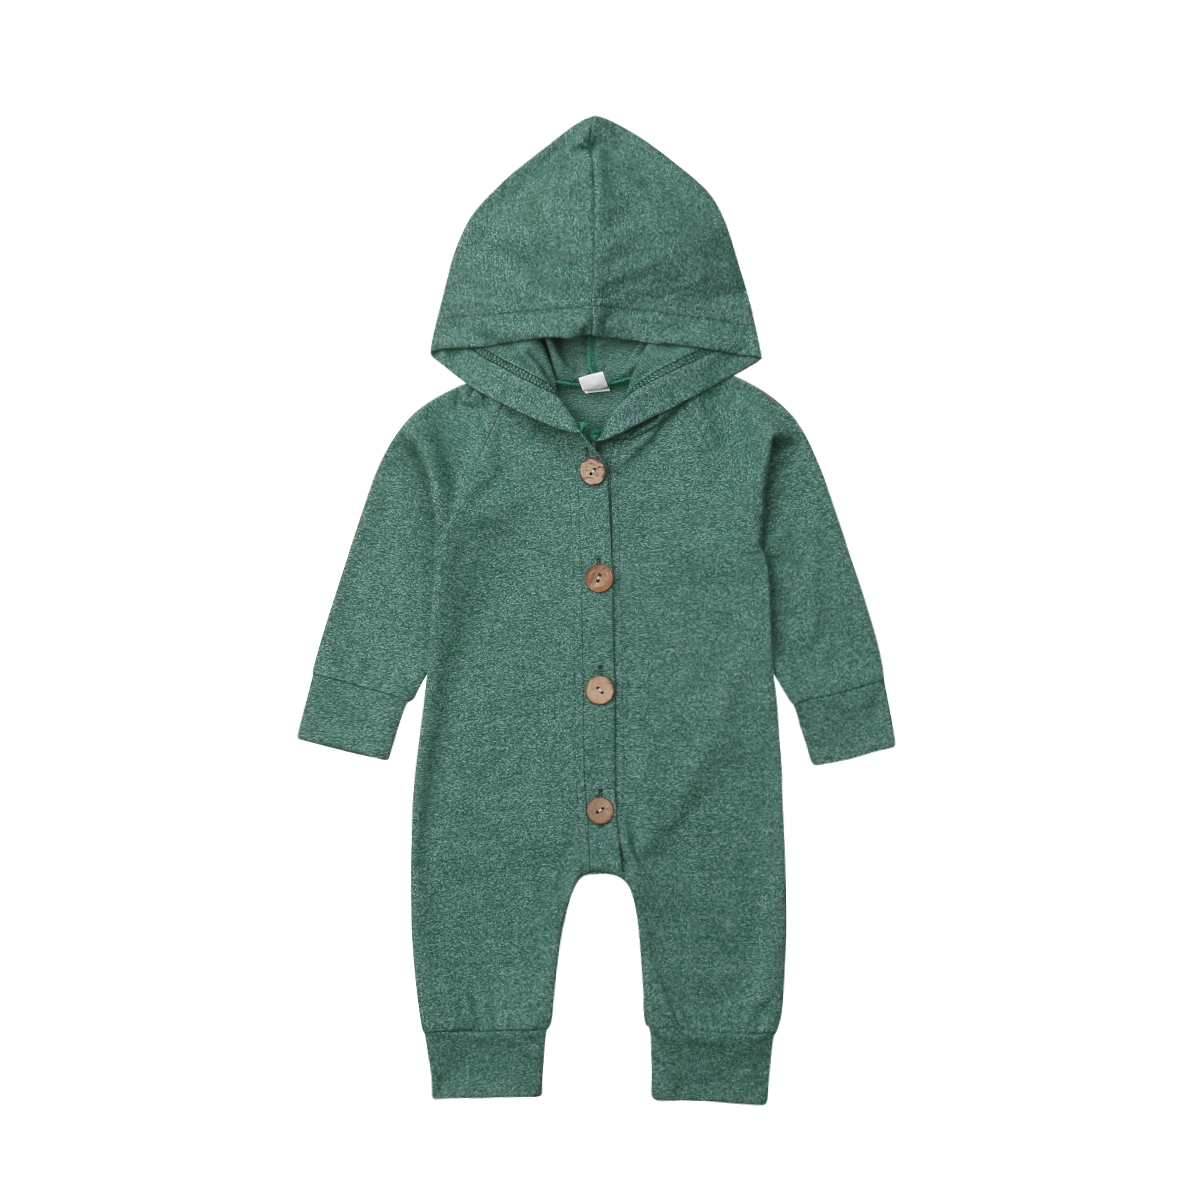 7 Color Baby Boy Girl Hooded   Romper   Kid Outerwear Outfit Jumpsuit for Newborn Baby Girl Infant Children Clothes Kid Clothing